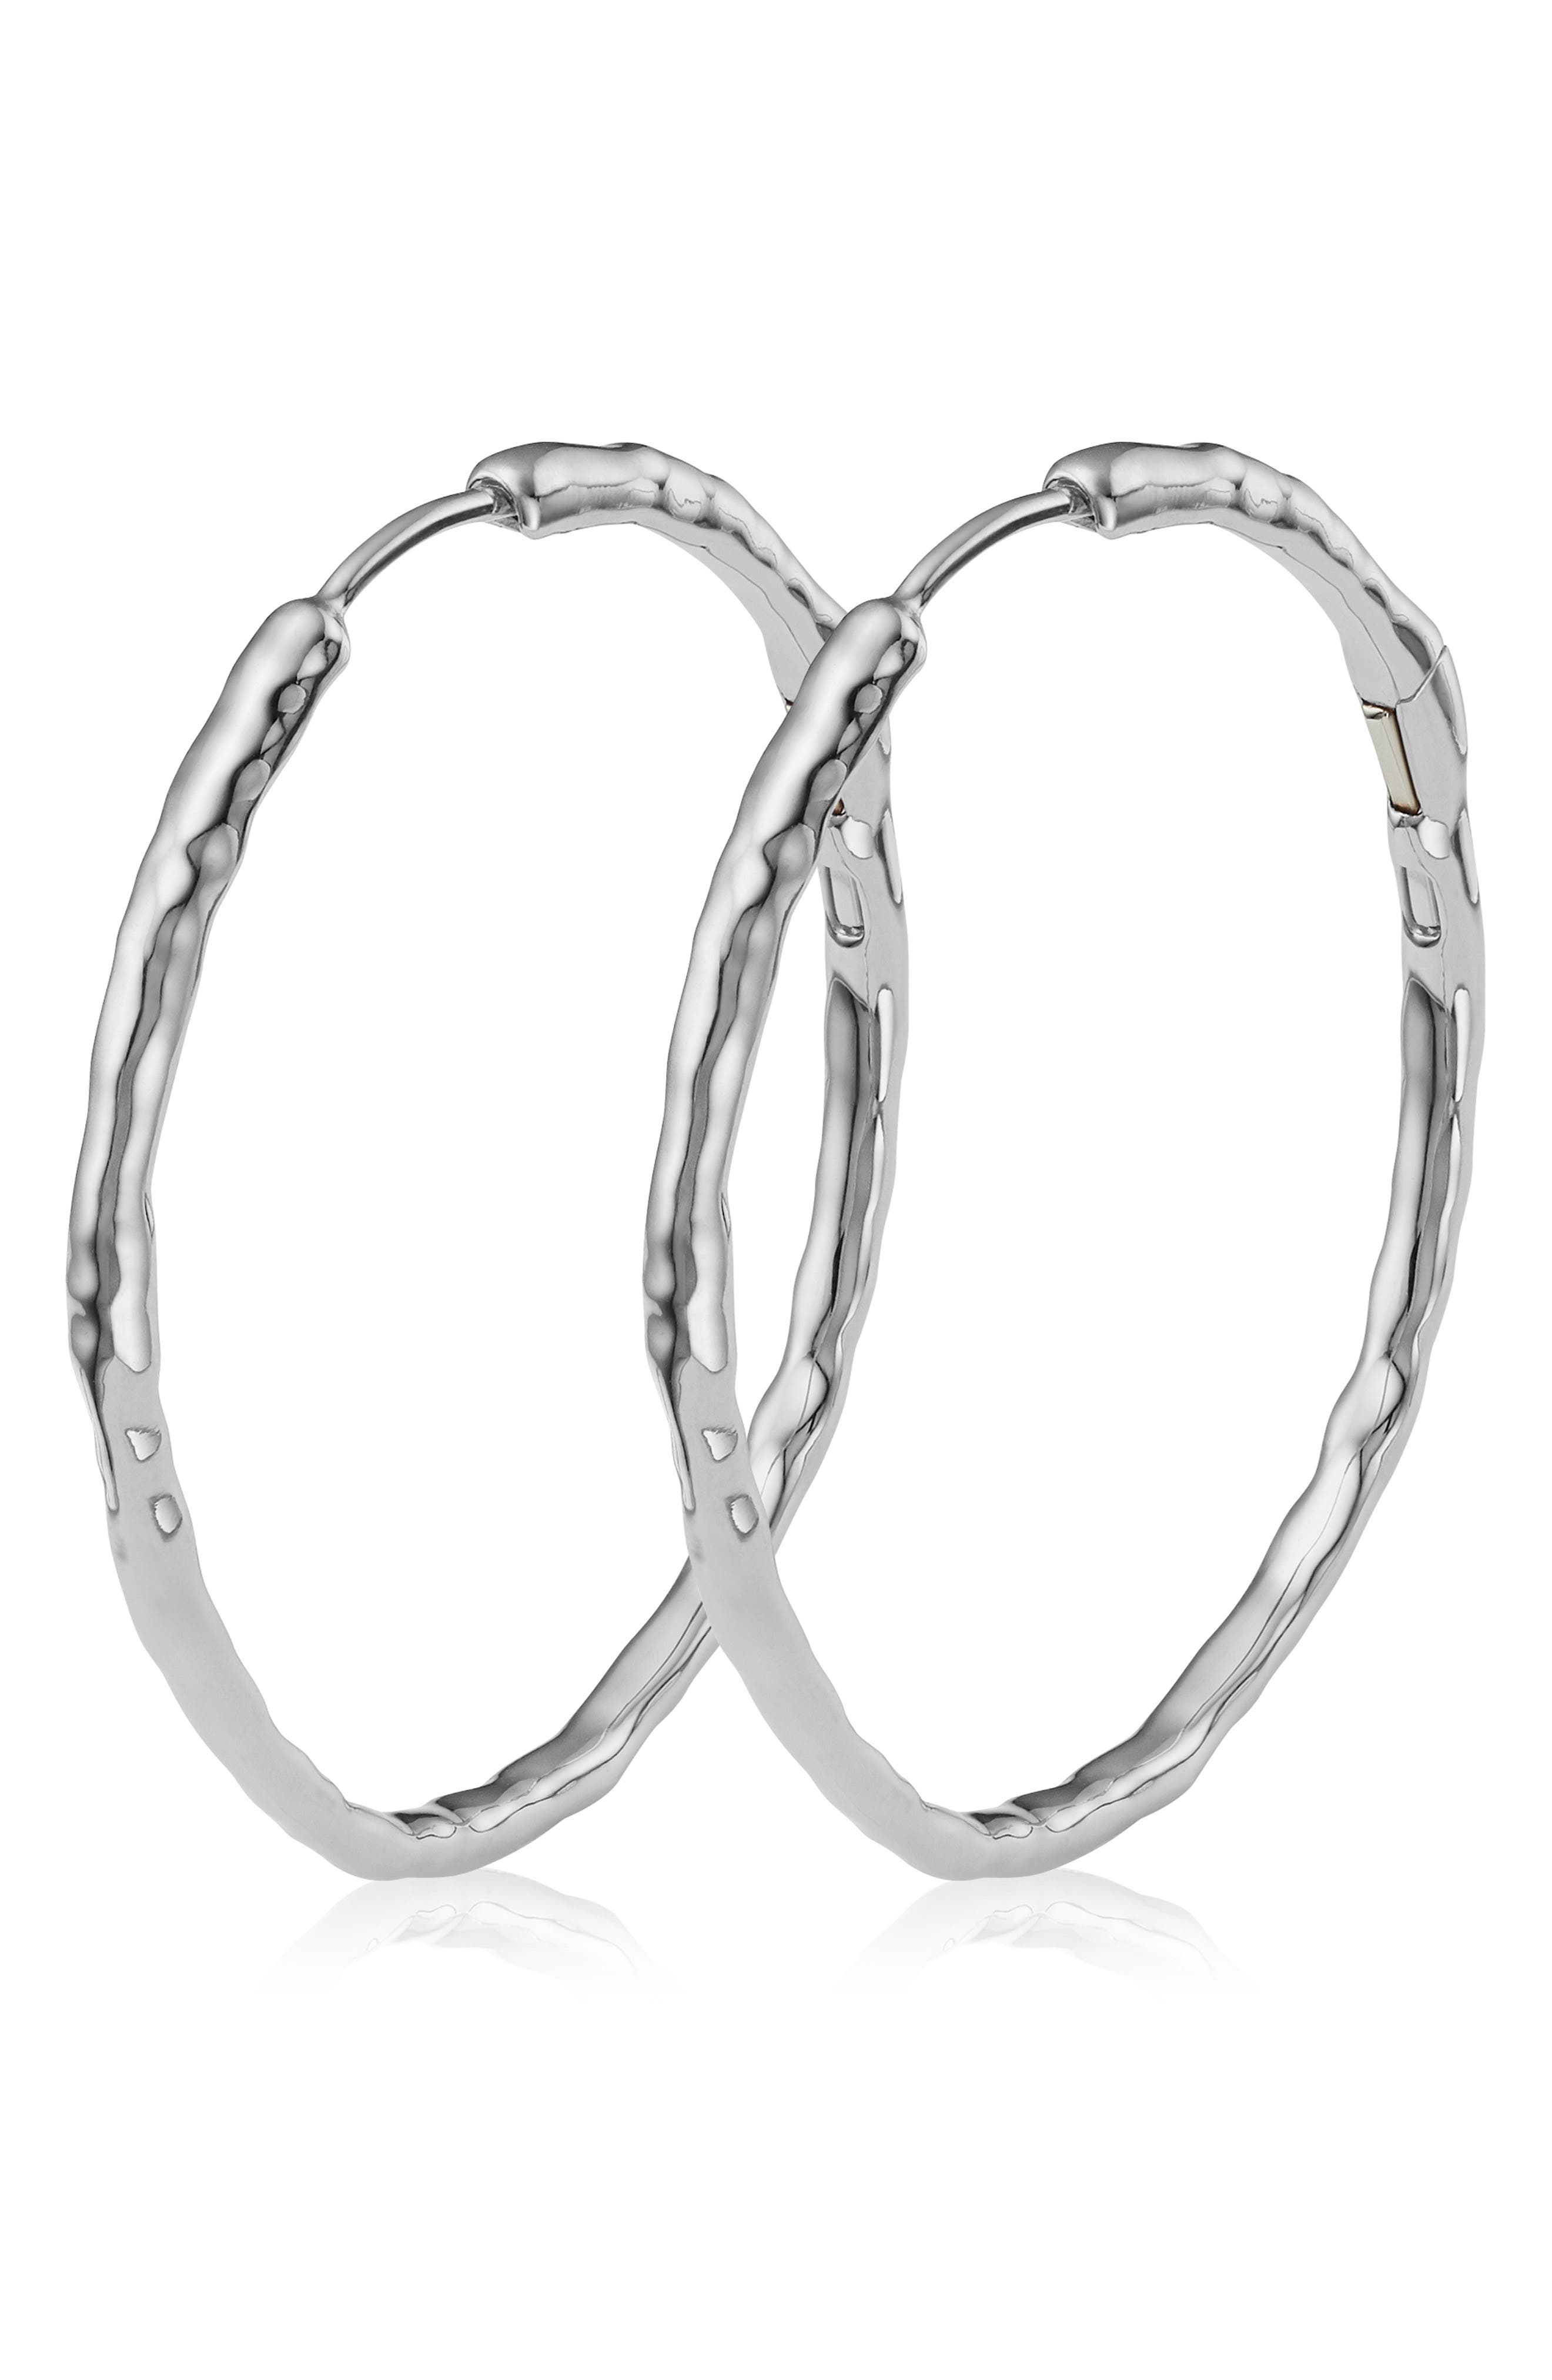 These organically shaped, high-polished hoops are beautiful worn solo, but also can be accessorized with Monica Vinader pendant charms, sold separately. Style Name: Monica Vinader Siren Muse Large Hoop Earrings. Style Number: 6028312. Available in stores.